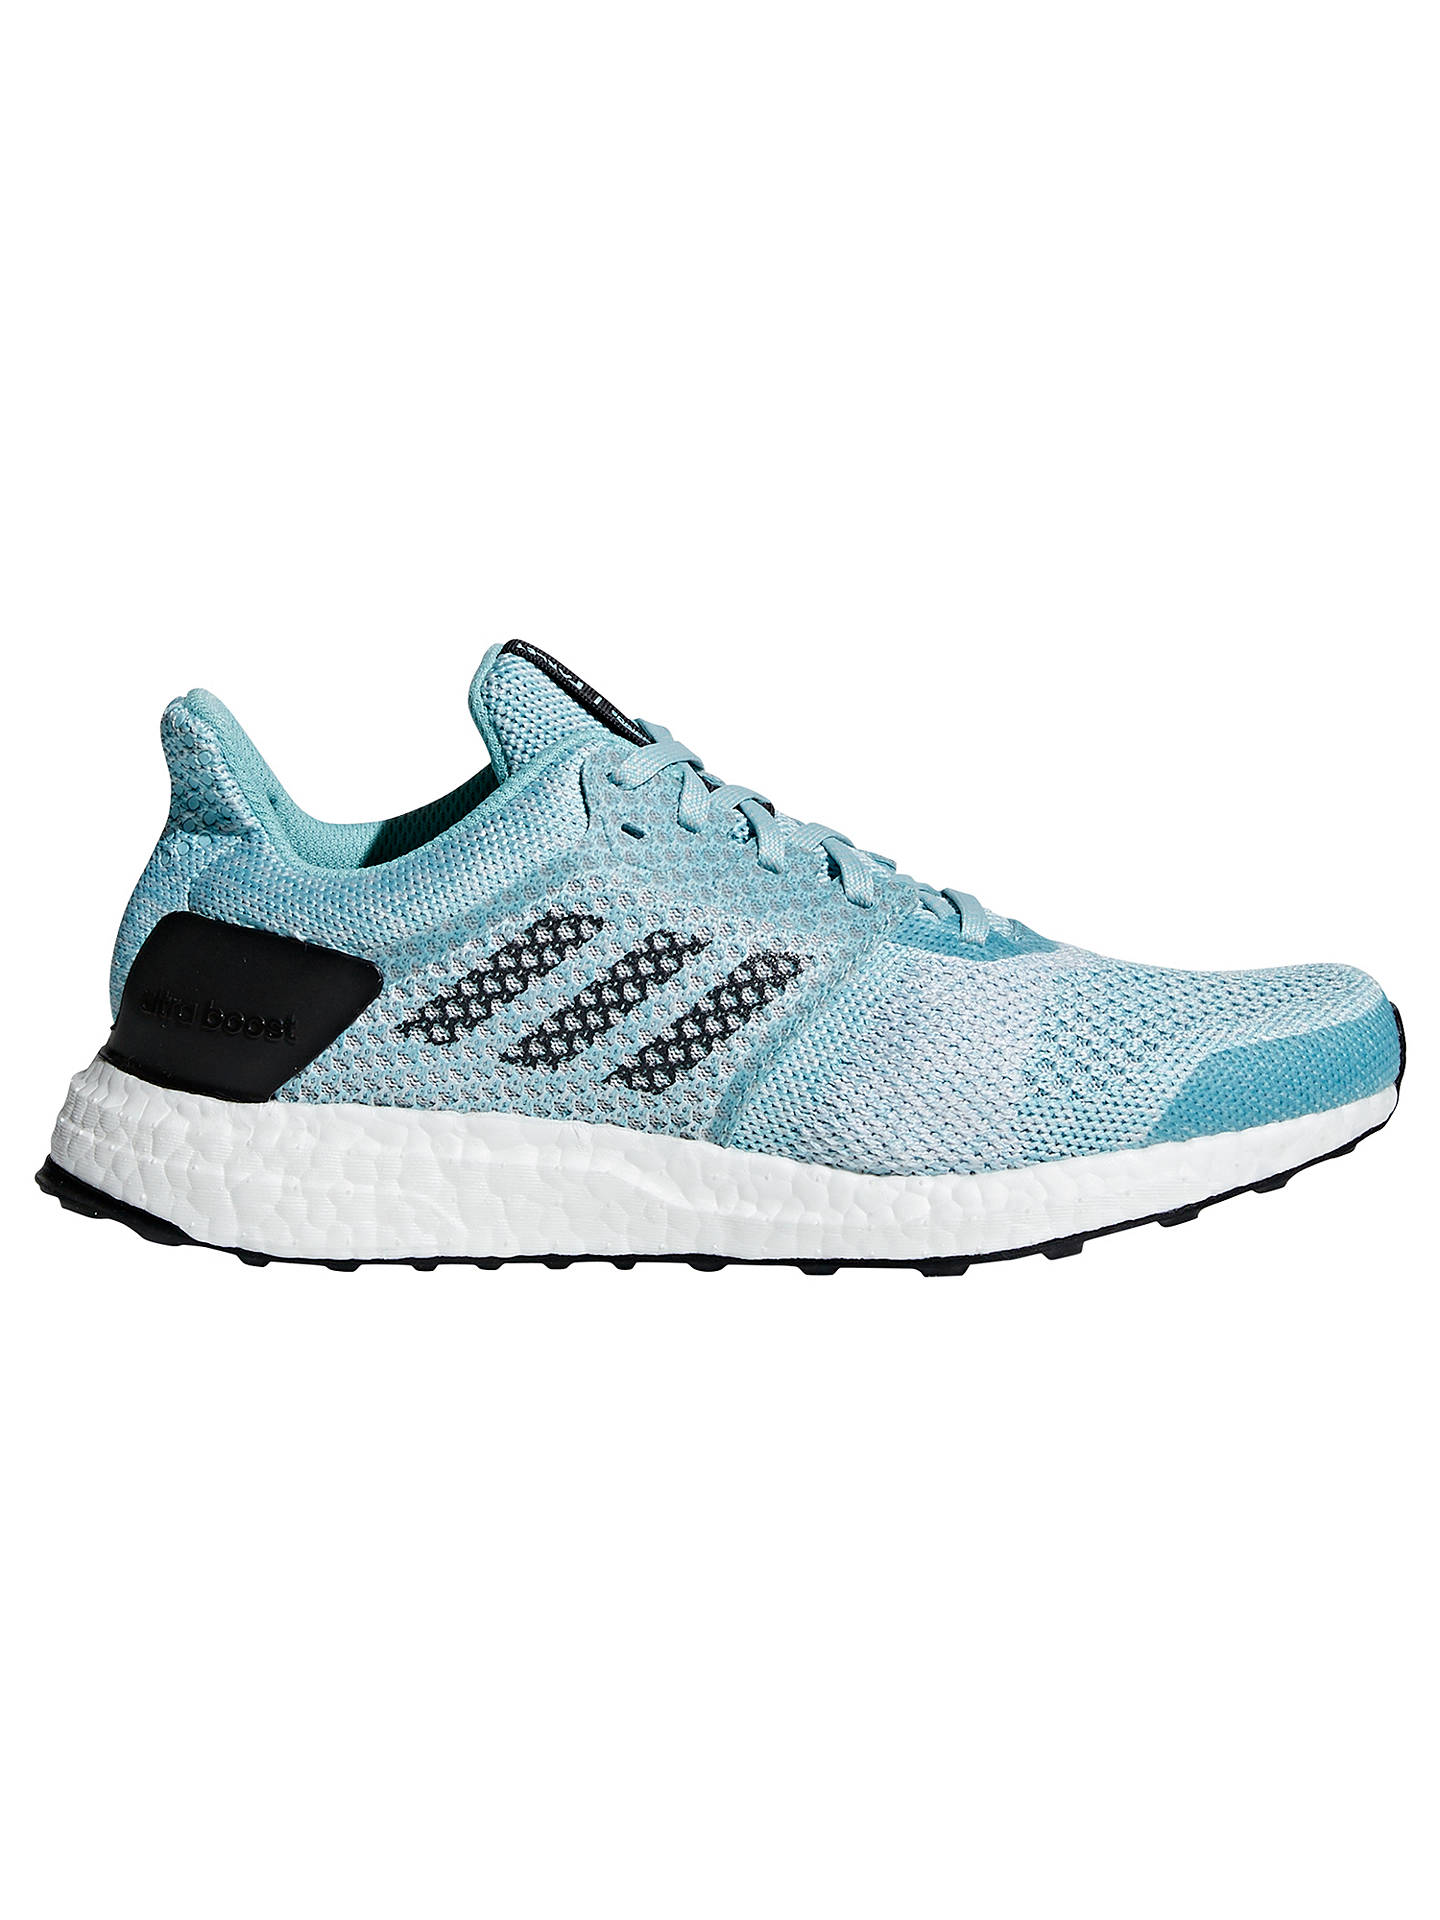 ab515608f5311 Buy adidas UltraBOOST ST Women s Running Shoes